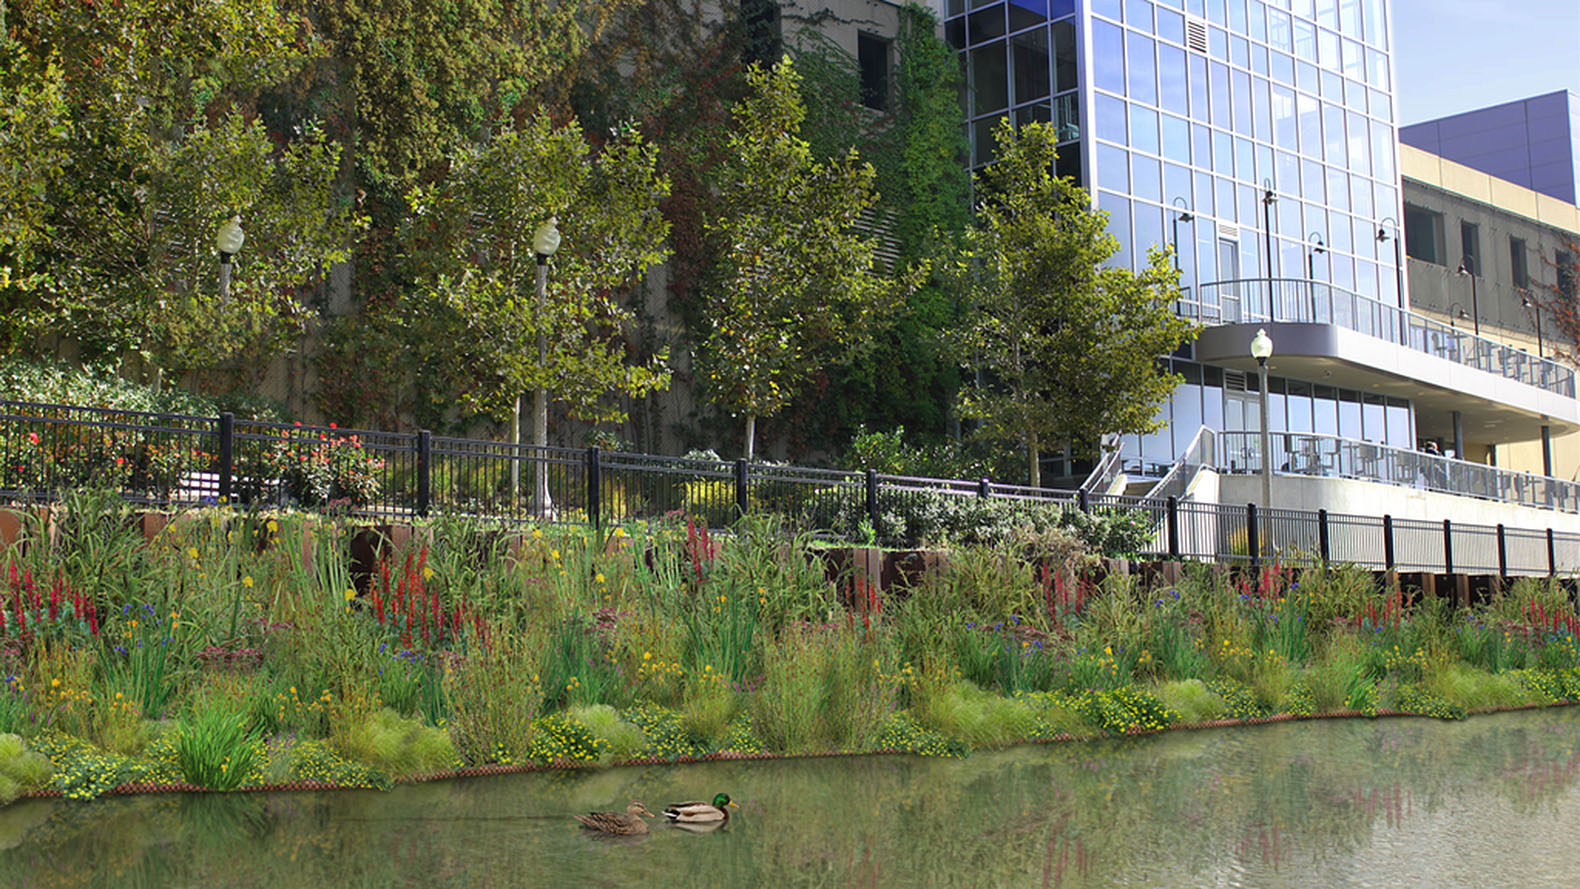 Garden Chicago: UrbanRivers Plans To Install Floating Gardens In The